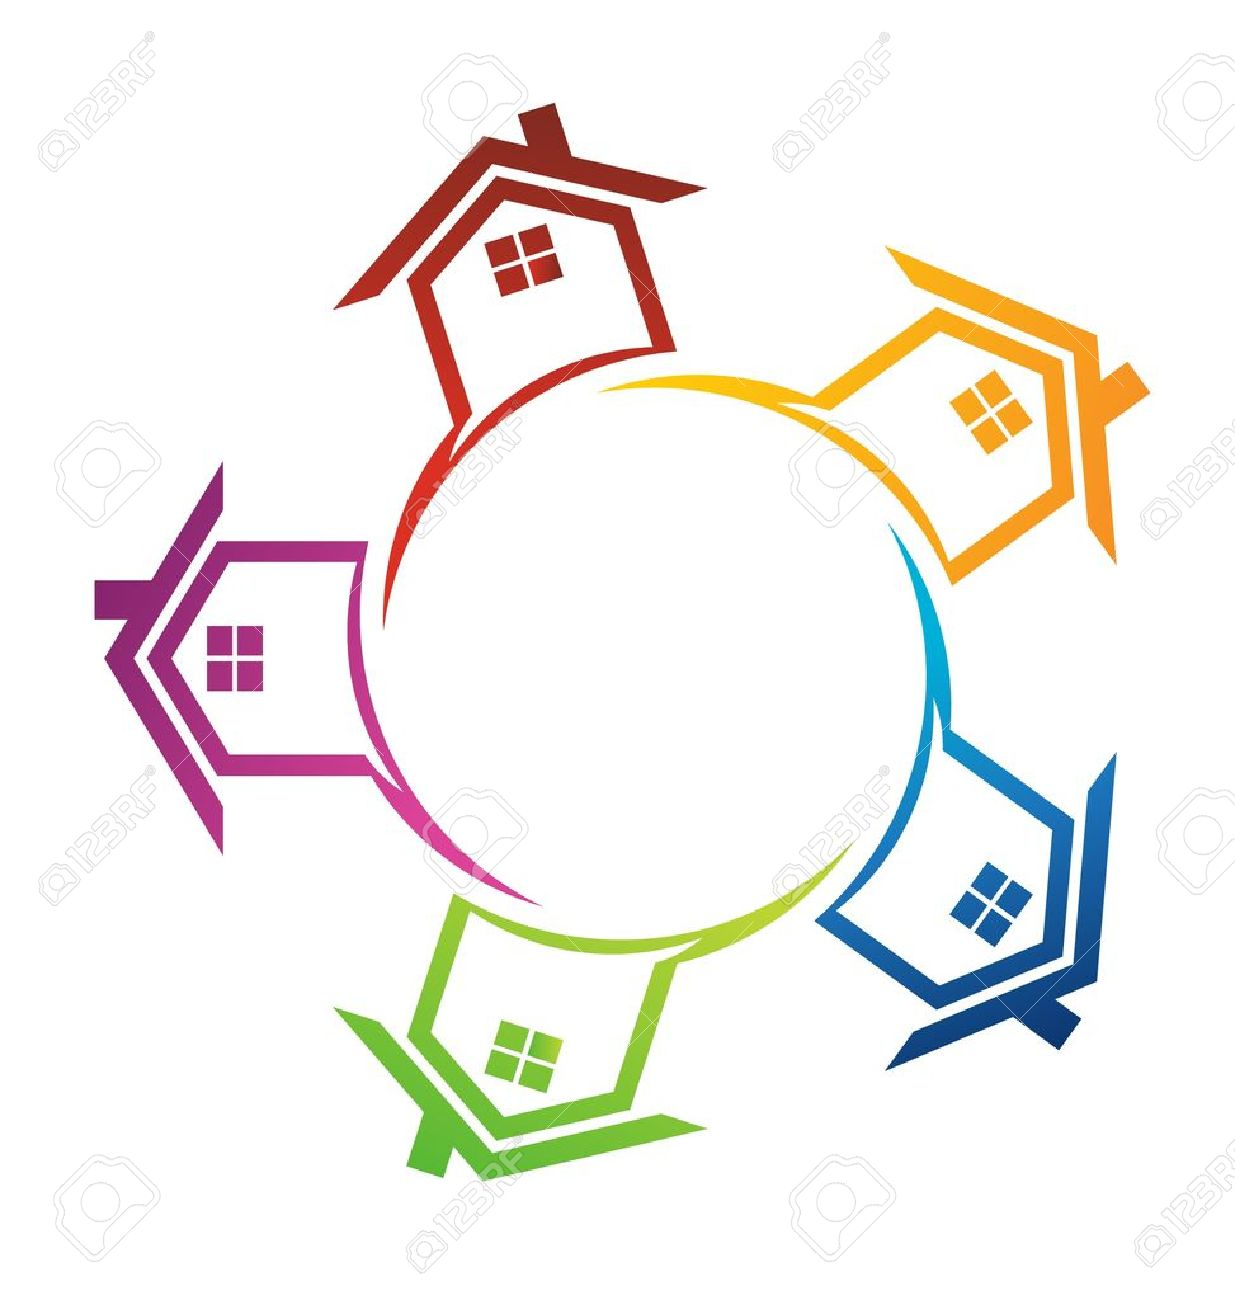 Group of houses in circle Stock Vector - 13144241